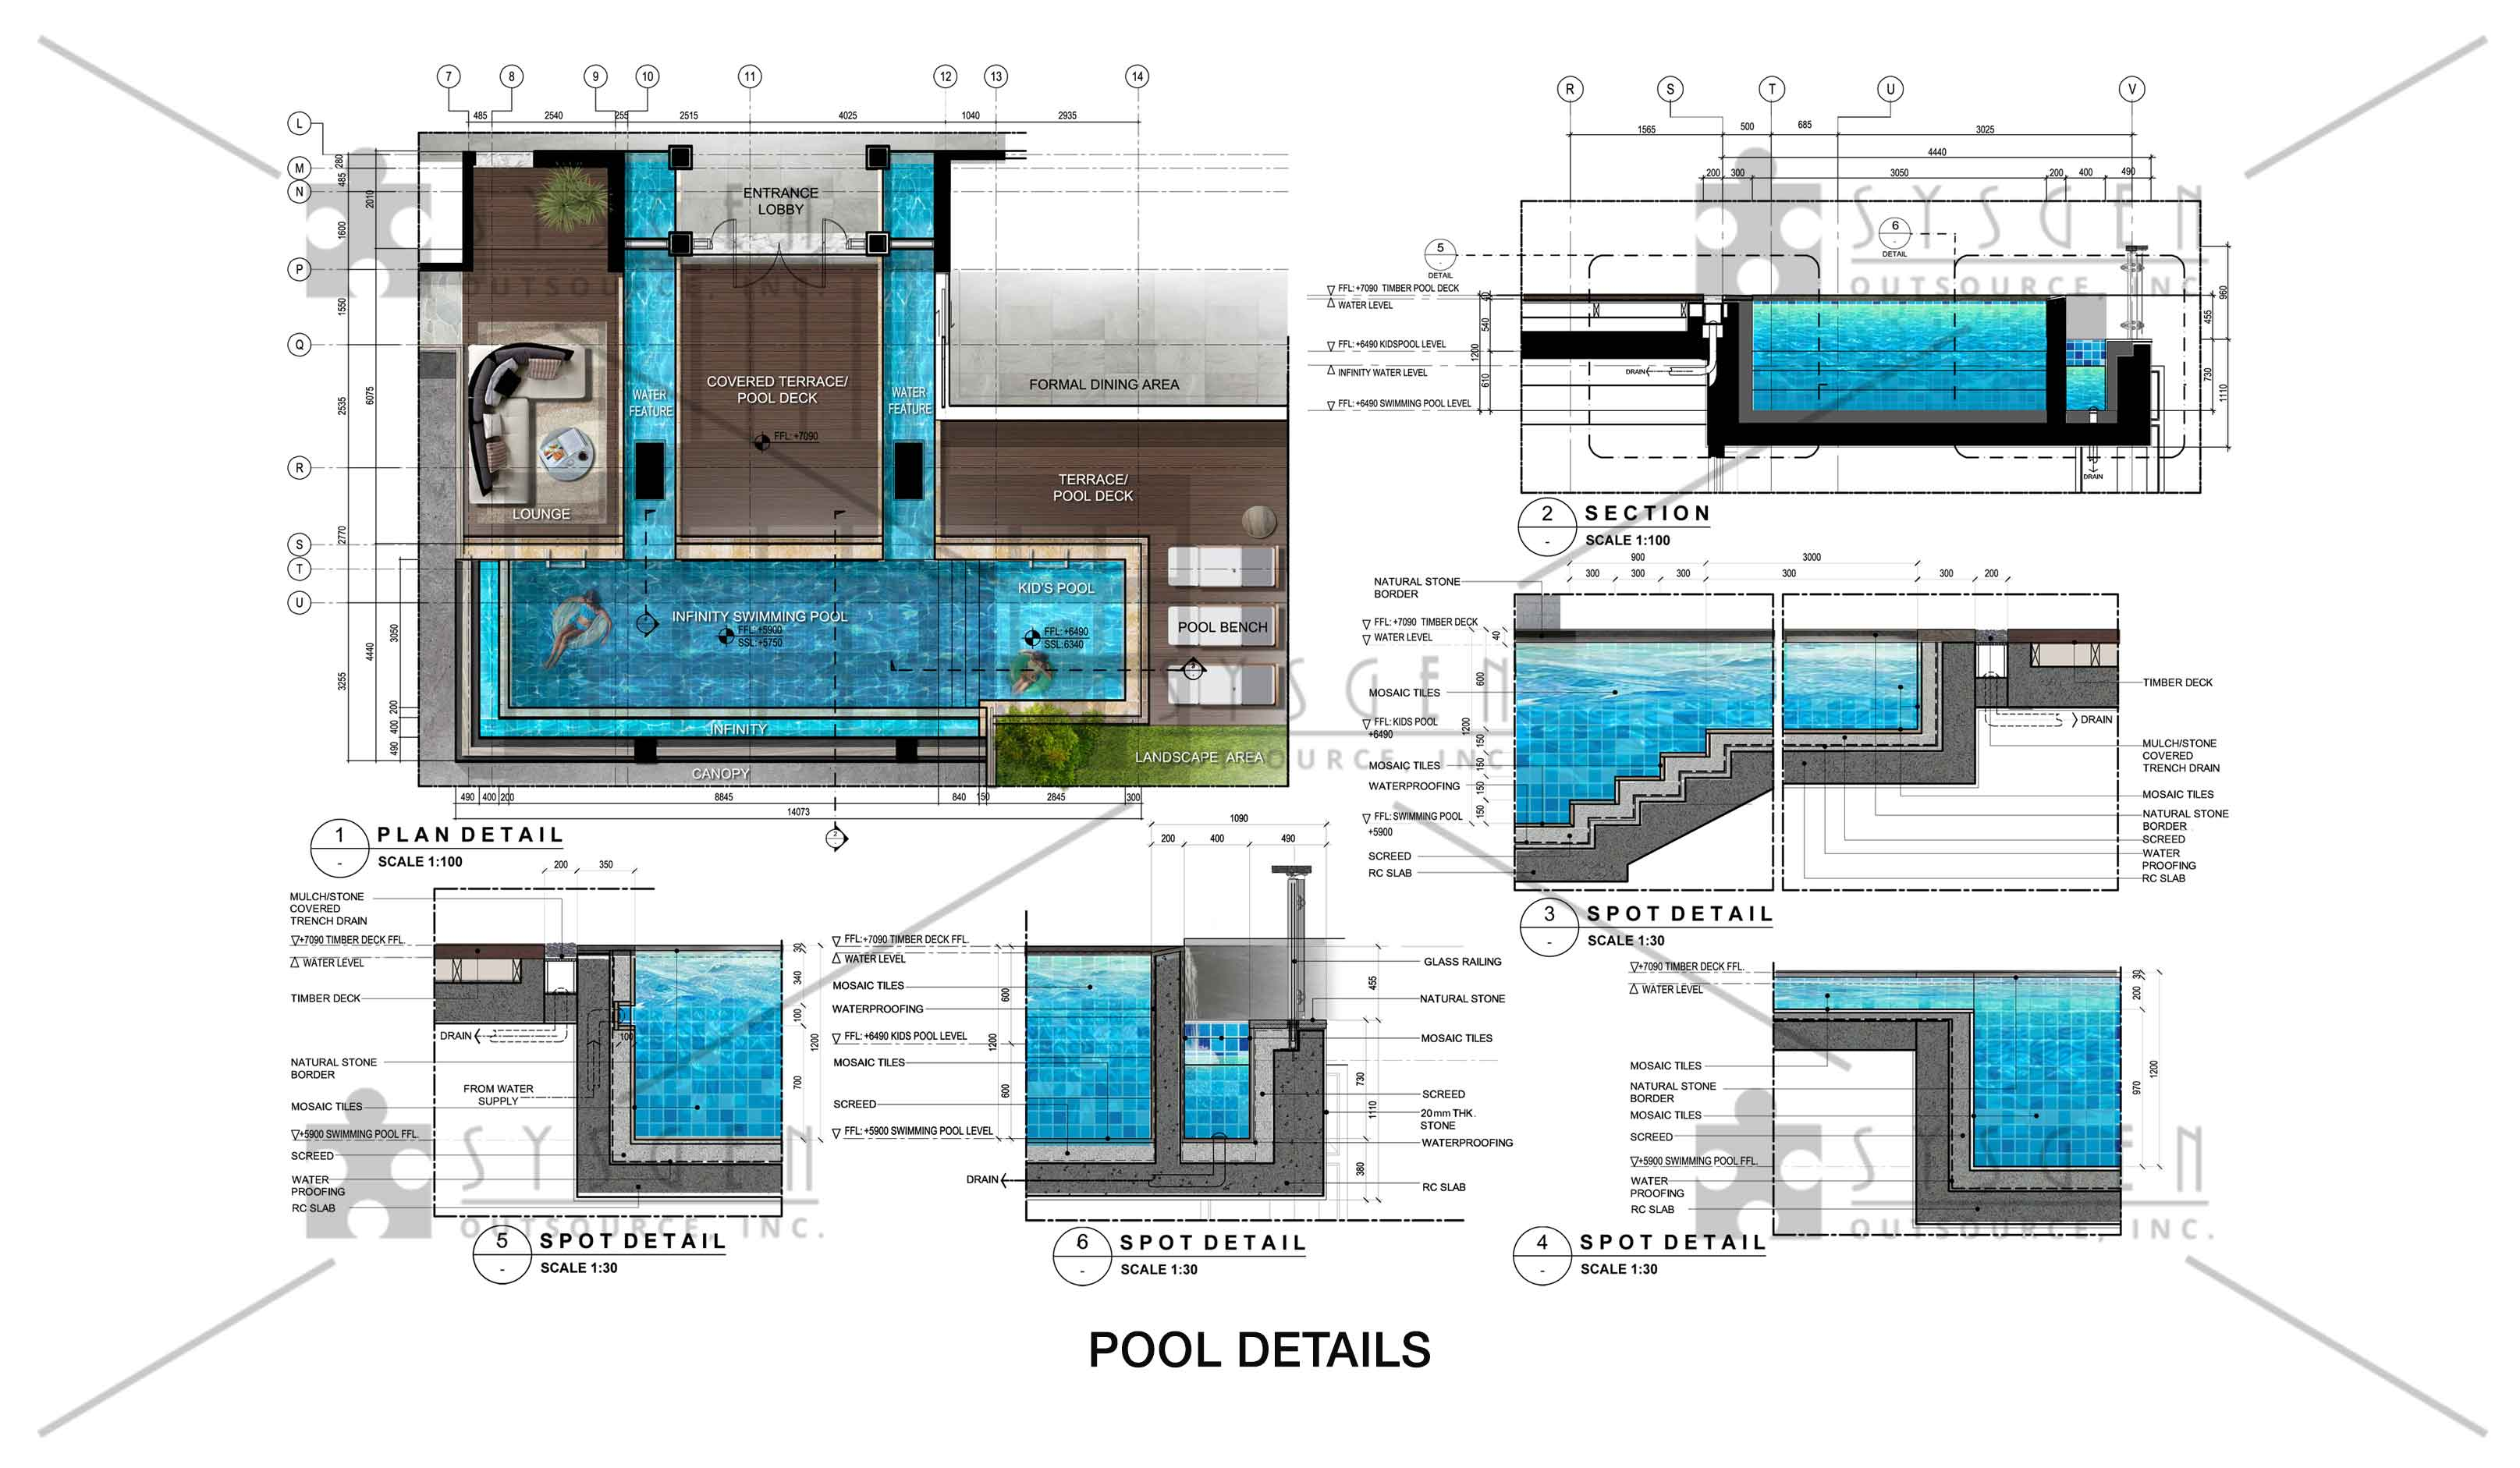 sysgen-outsource-cad-outsourcing-services-sketch-up-resi_villa-jj14